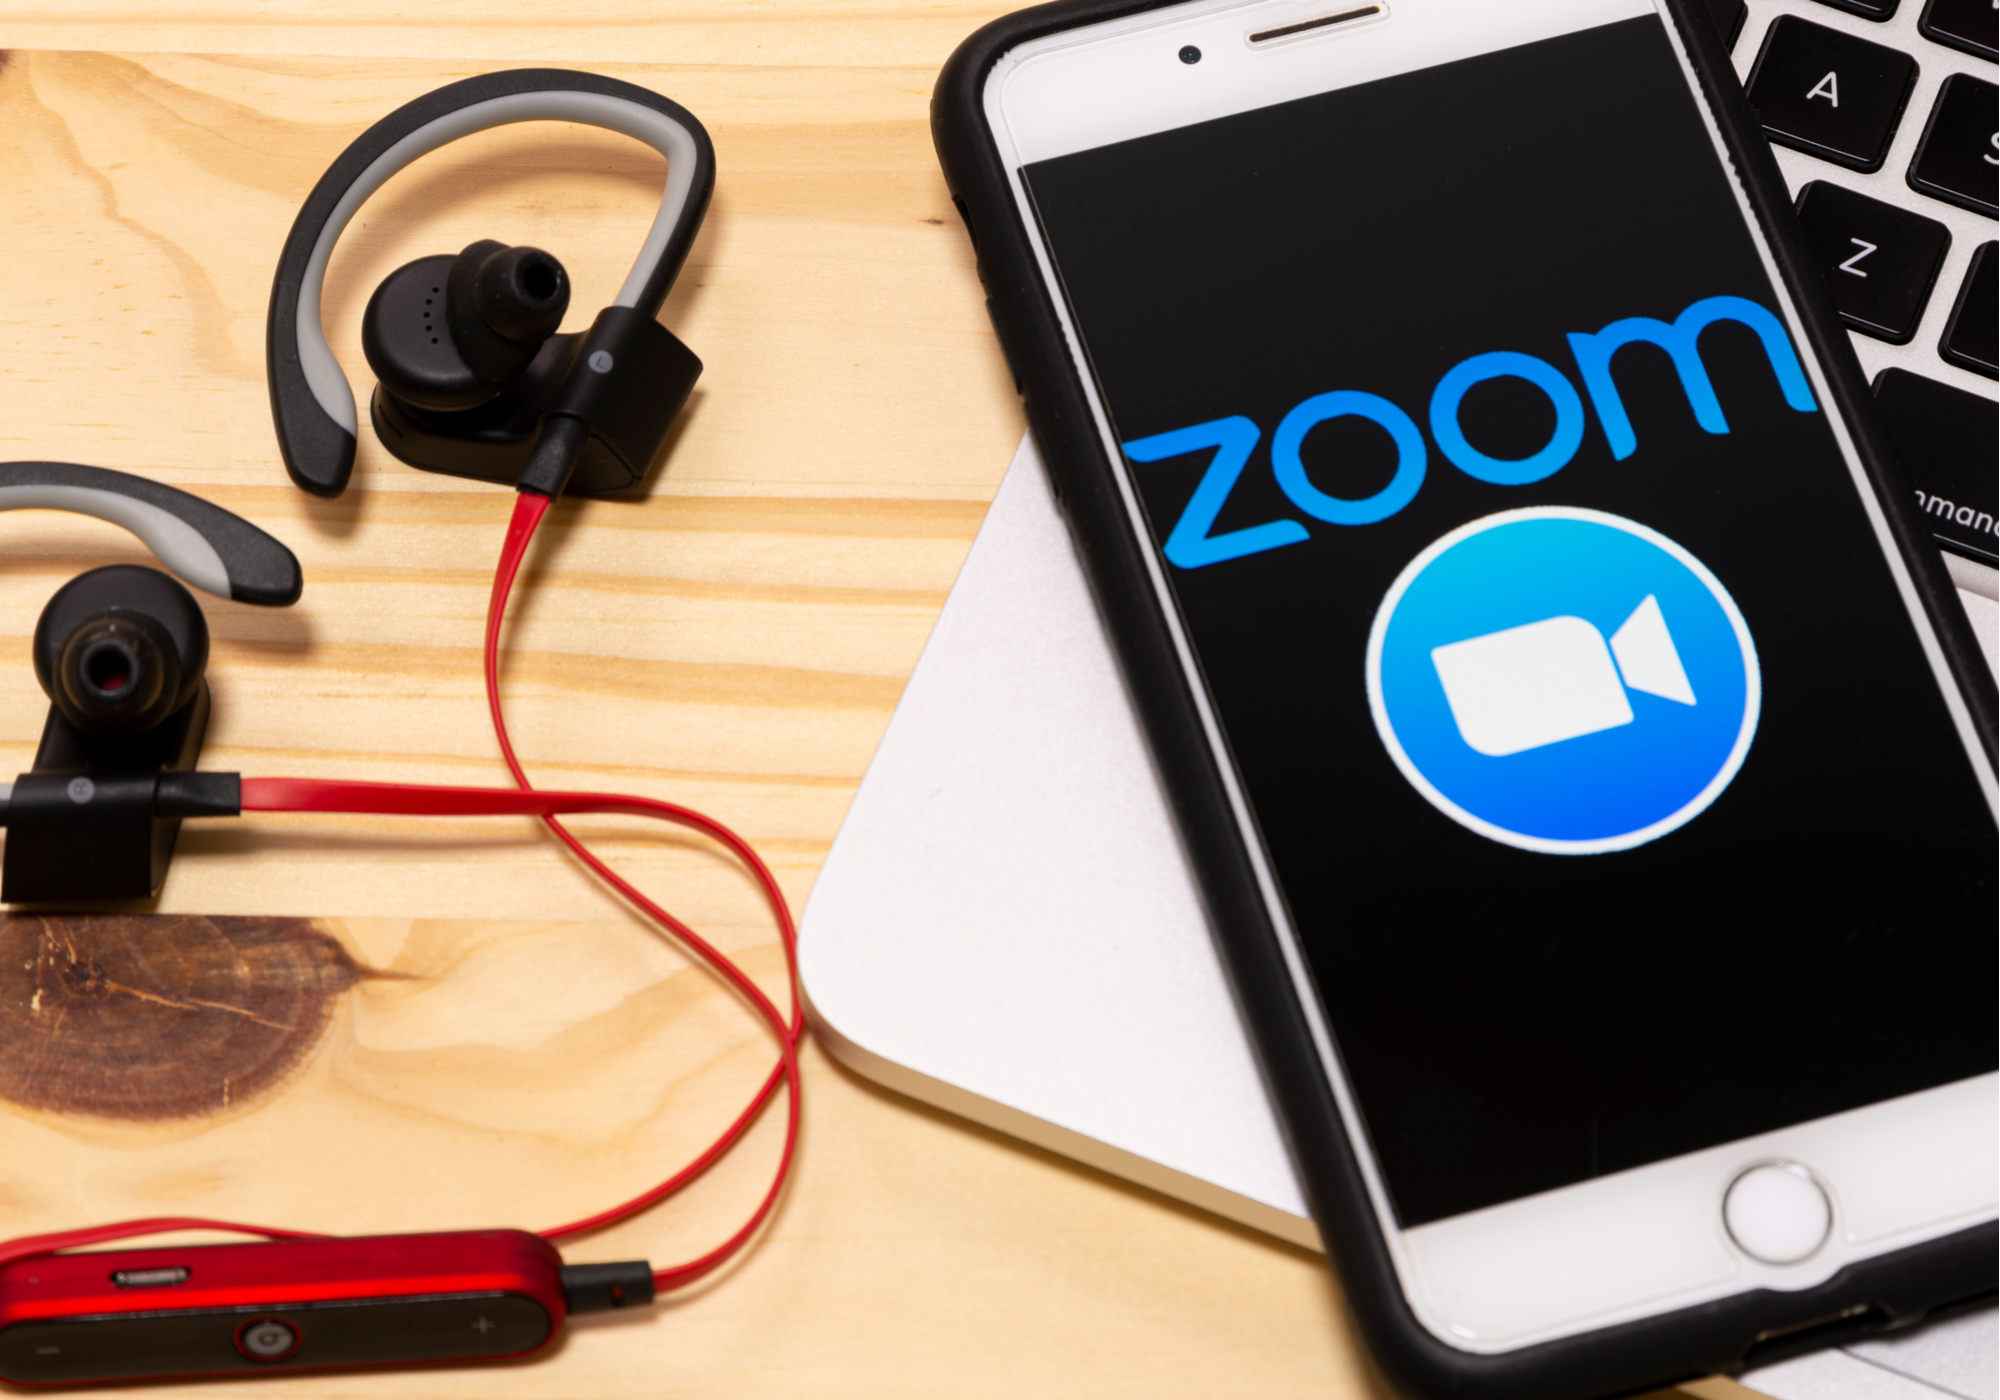 Zoom revenue soars 169% in one year, fuelled by remote working surge